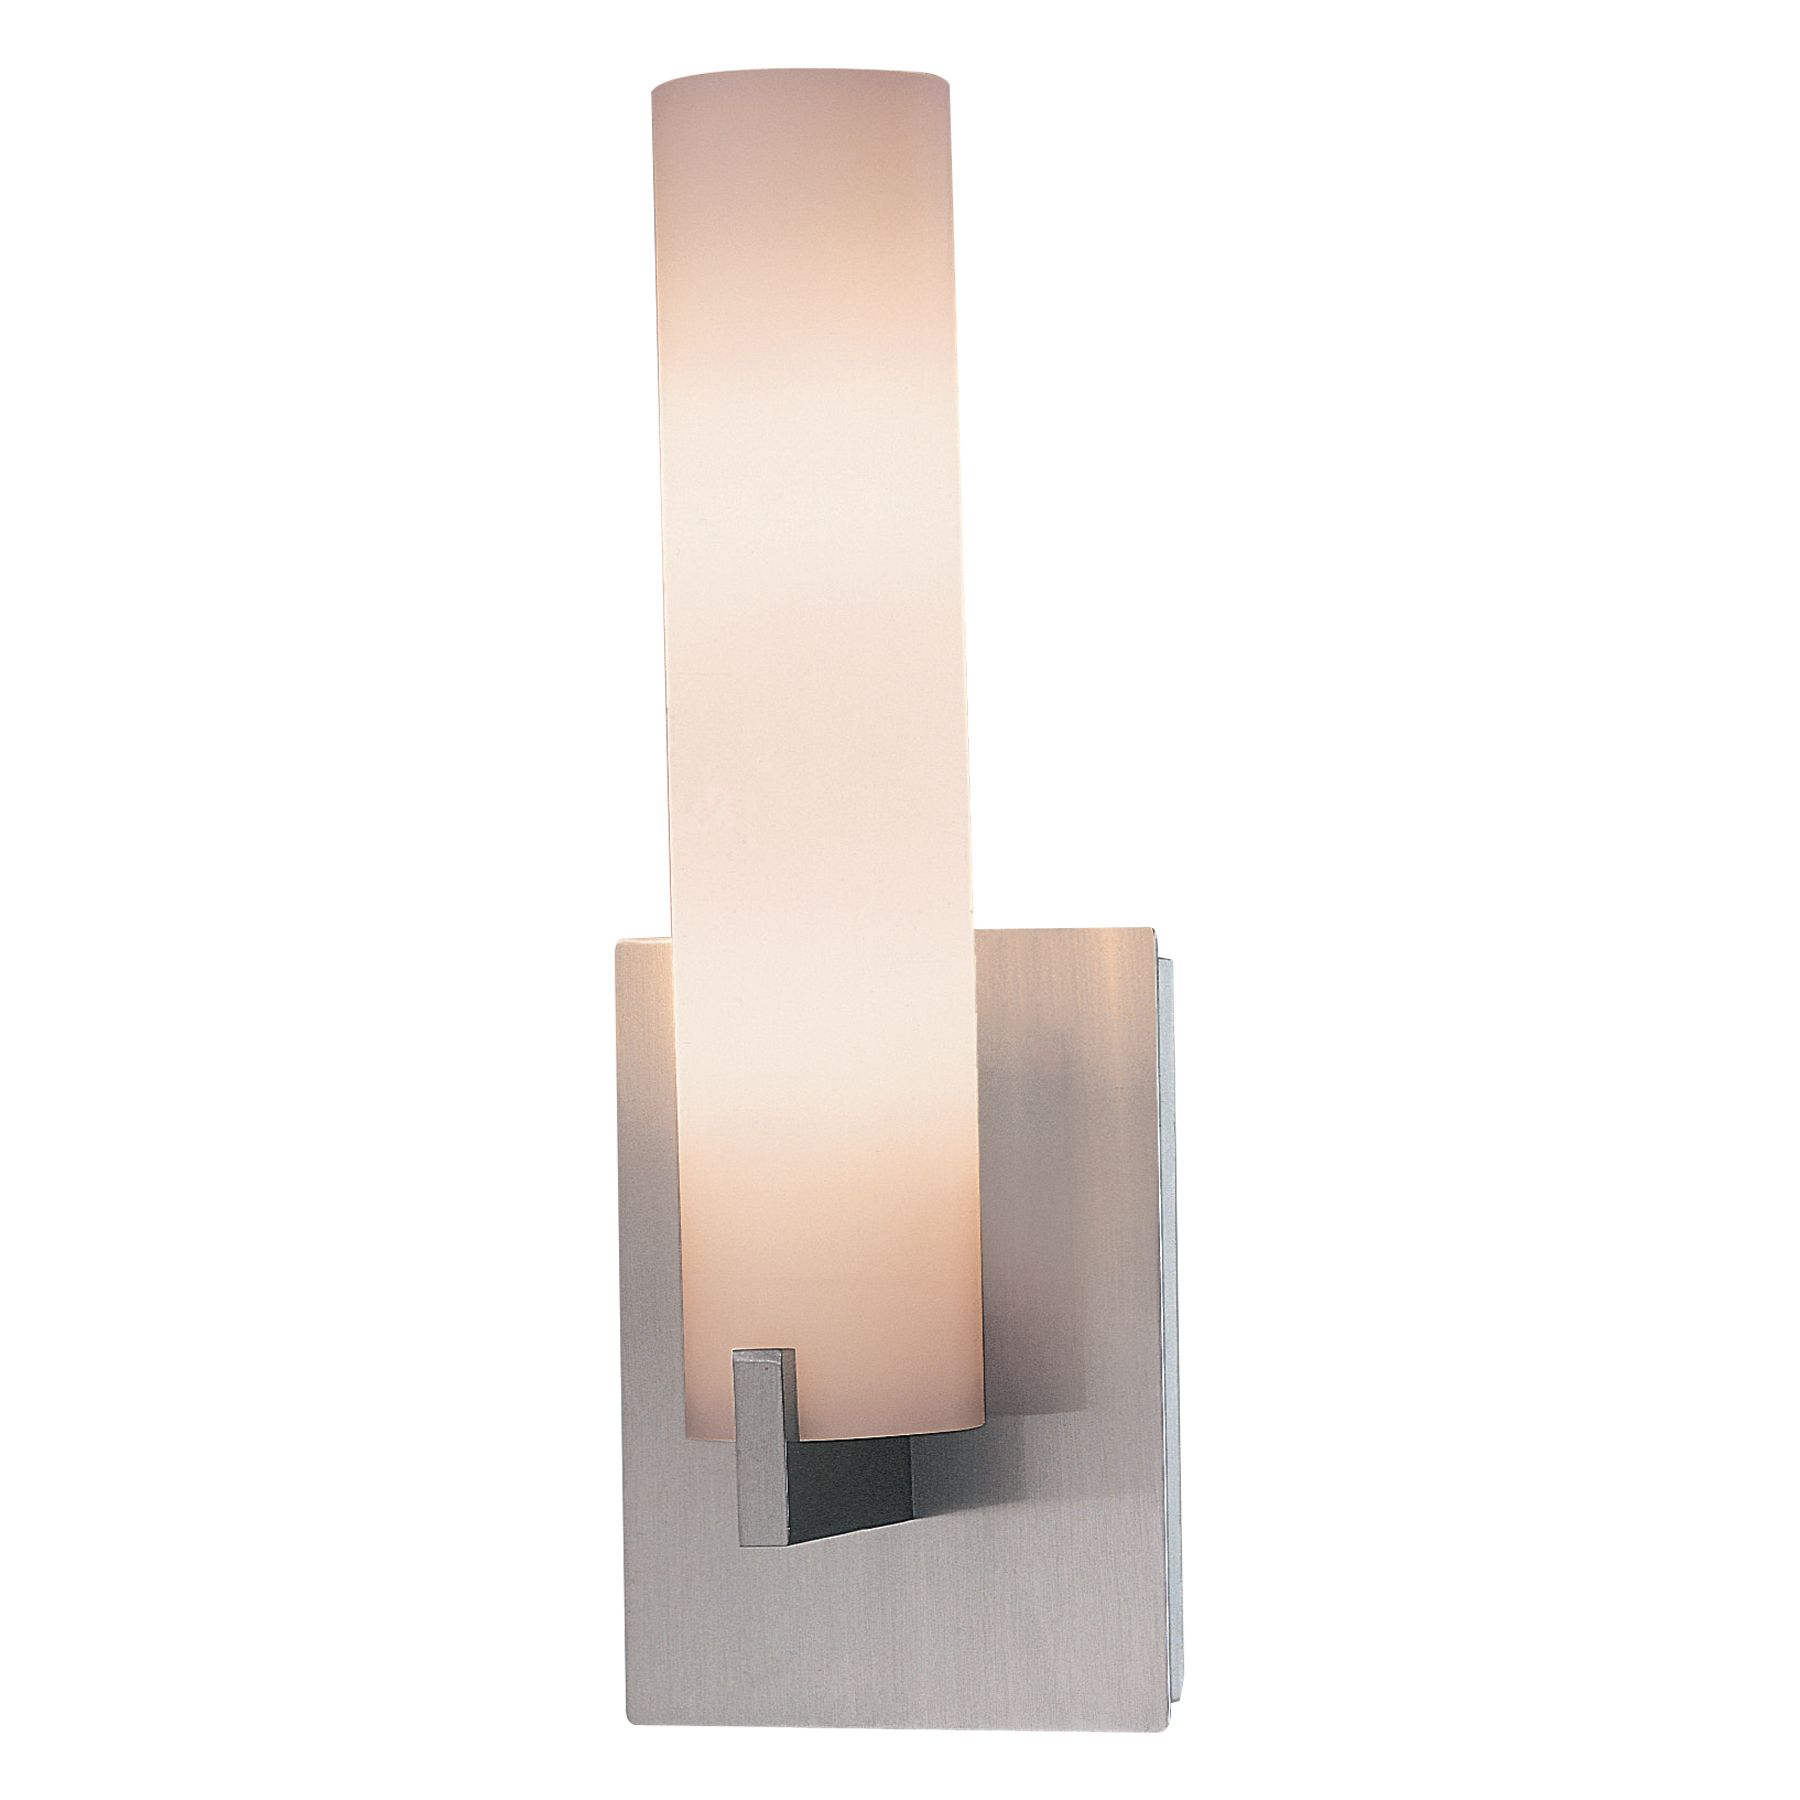 Tube Wall Light Wall Sconces Vanities And Bath